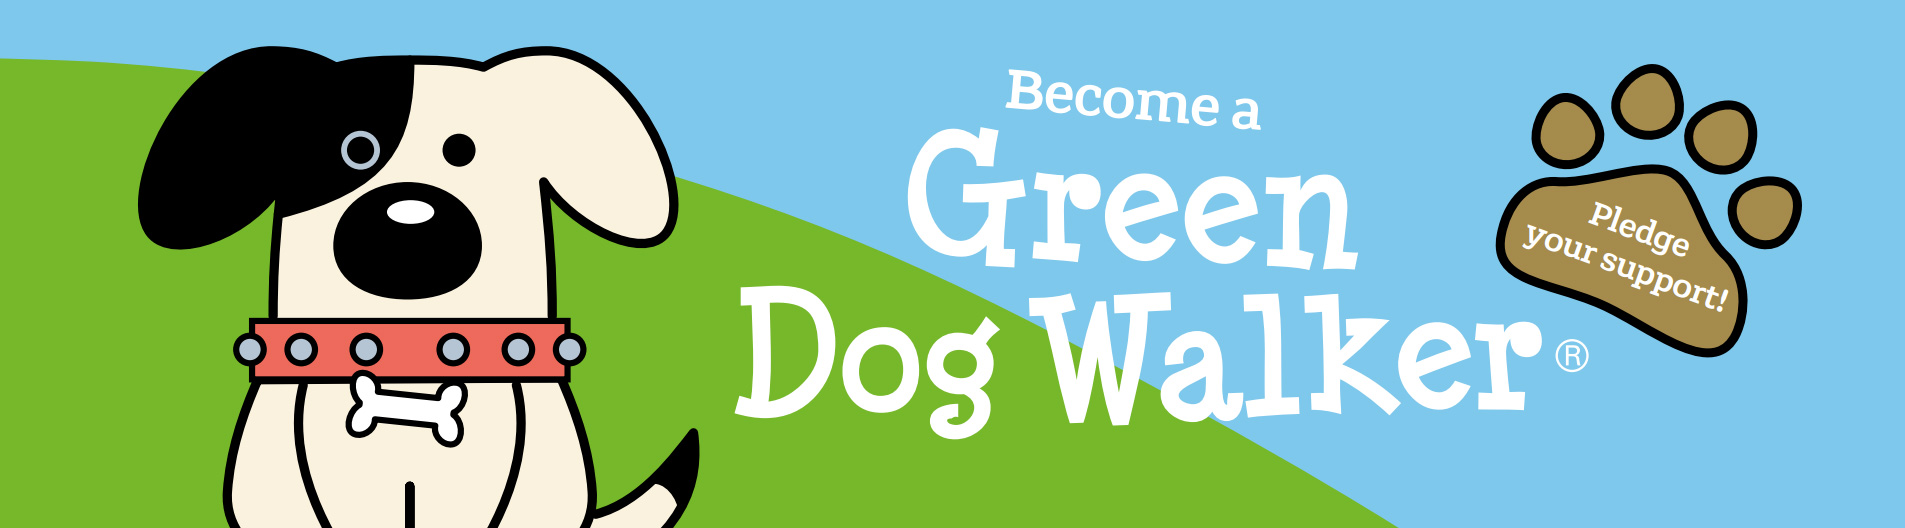 Join our Green Dog Walkers® scheme